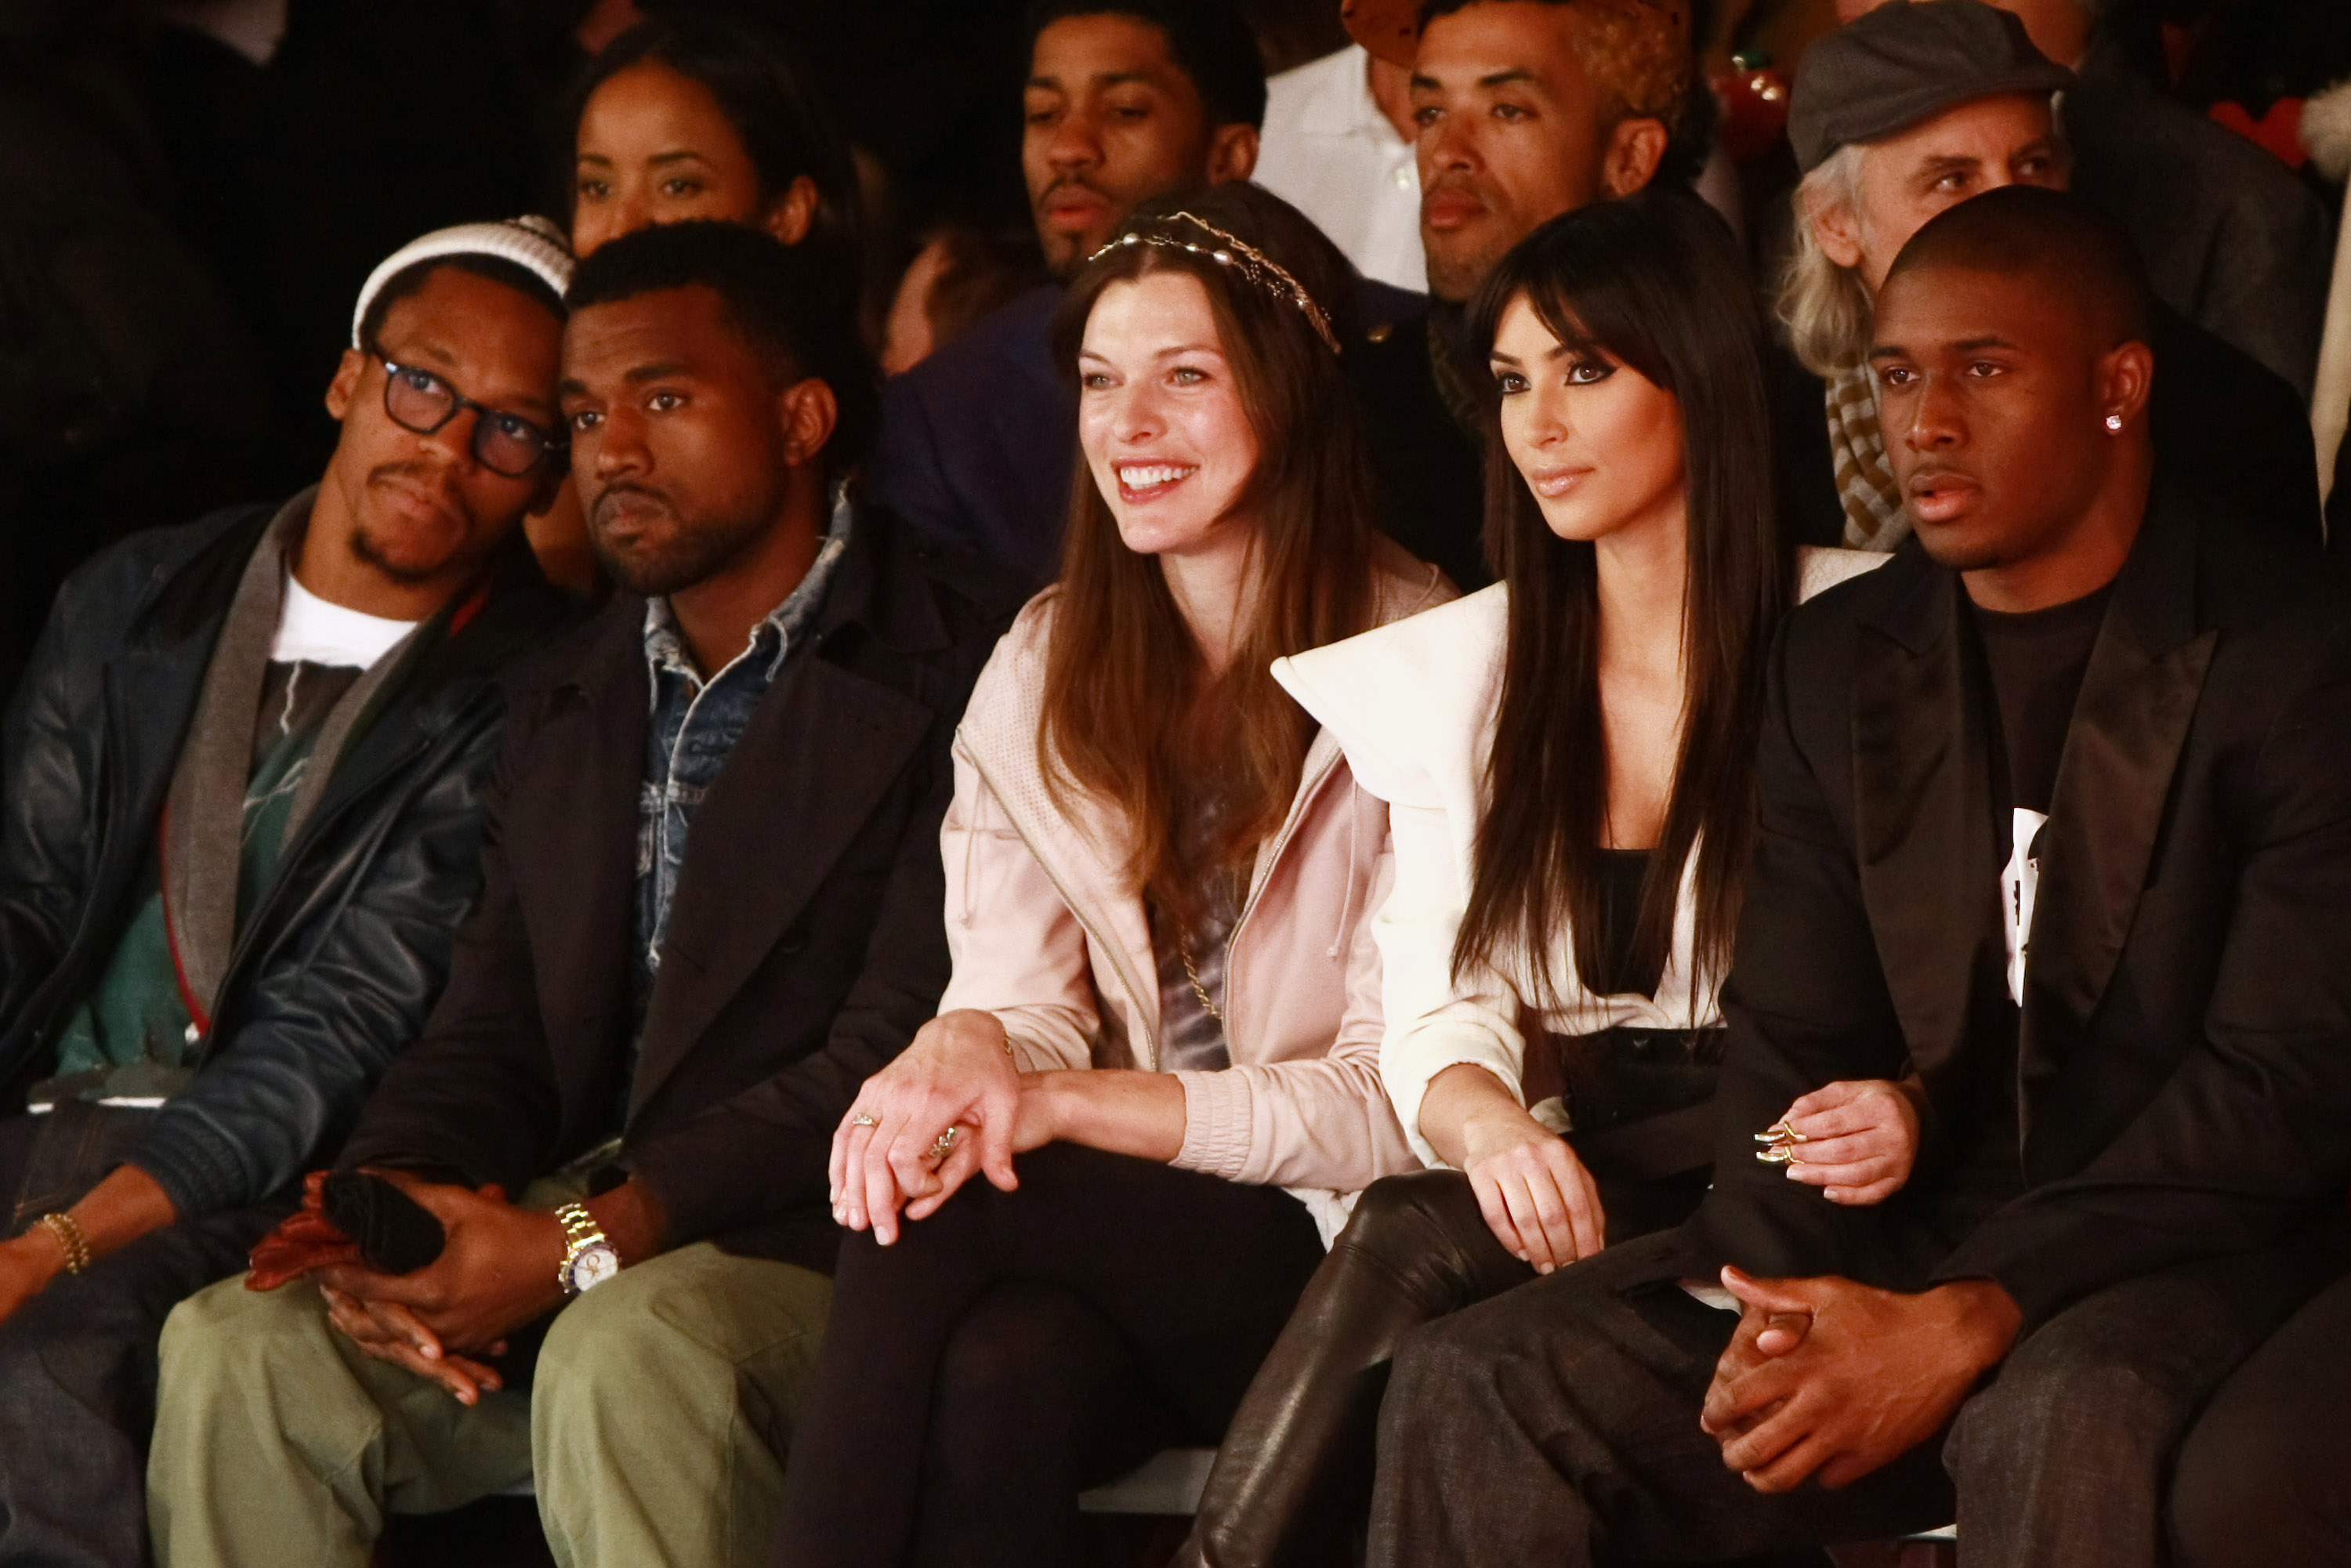 In February 2009, Kim and Kanye were spotted sitting <i>almost</i> next to each other at the Y-3 show during New York Fashion Week. Kim was with boyfriend Bush. Later that week, Kanye outed his relationship with model Amber Rose.